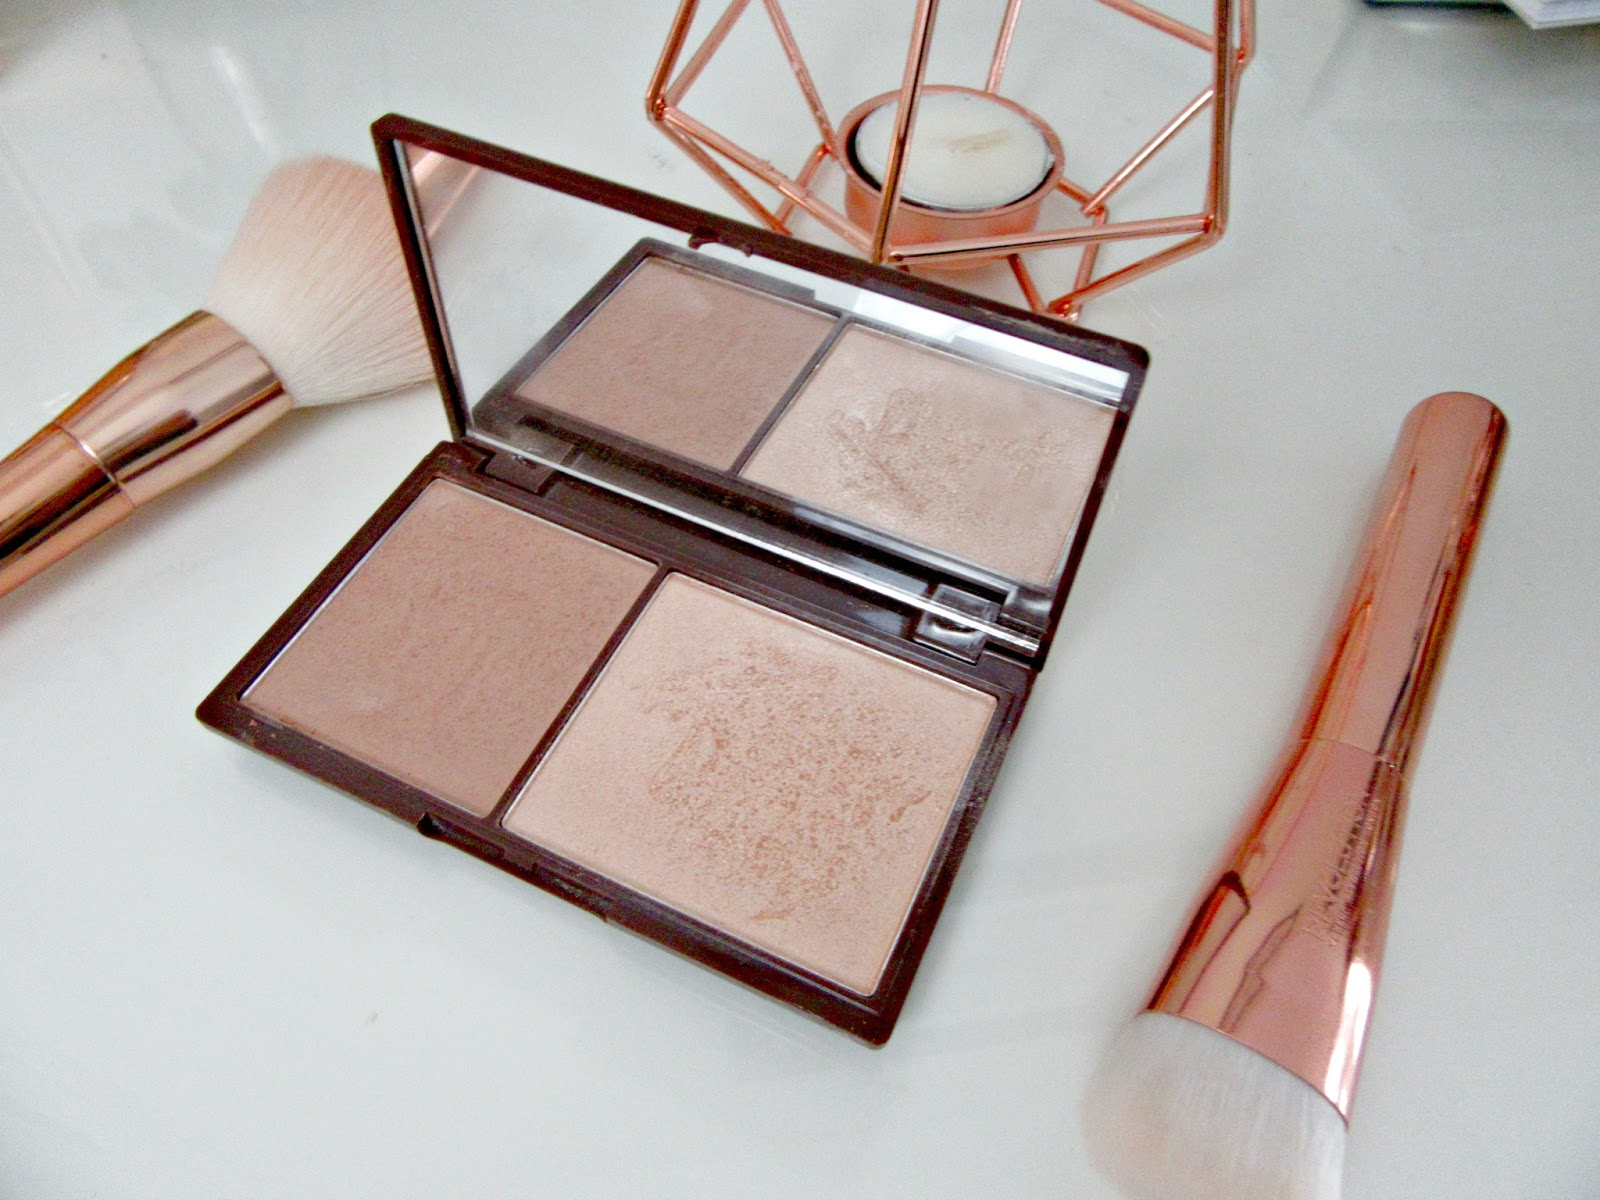 I Heart Makeup Bronz and Glow palette